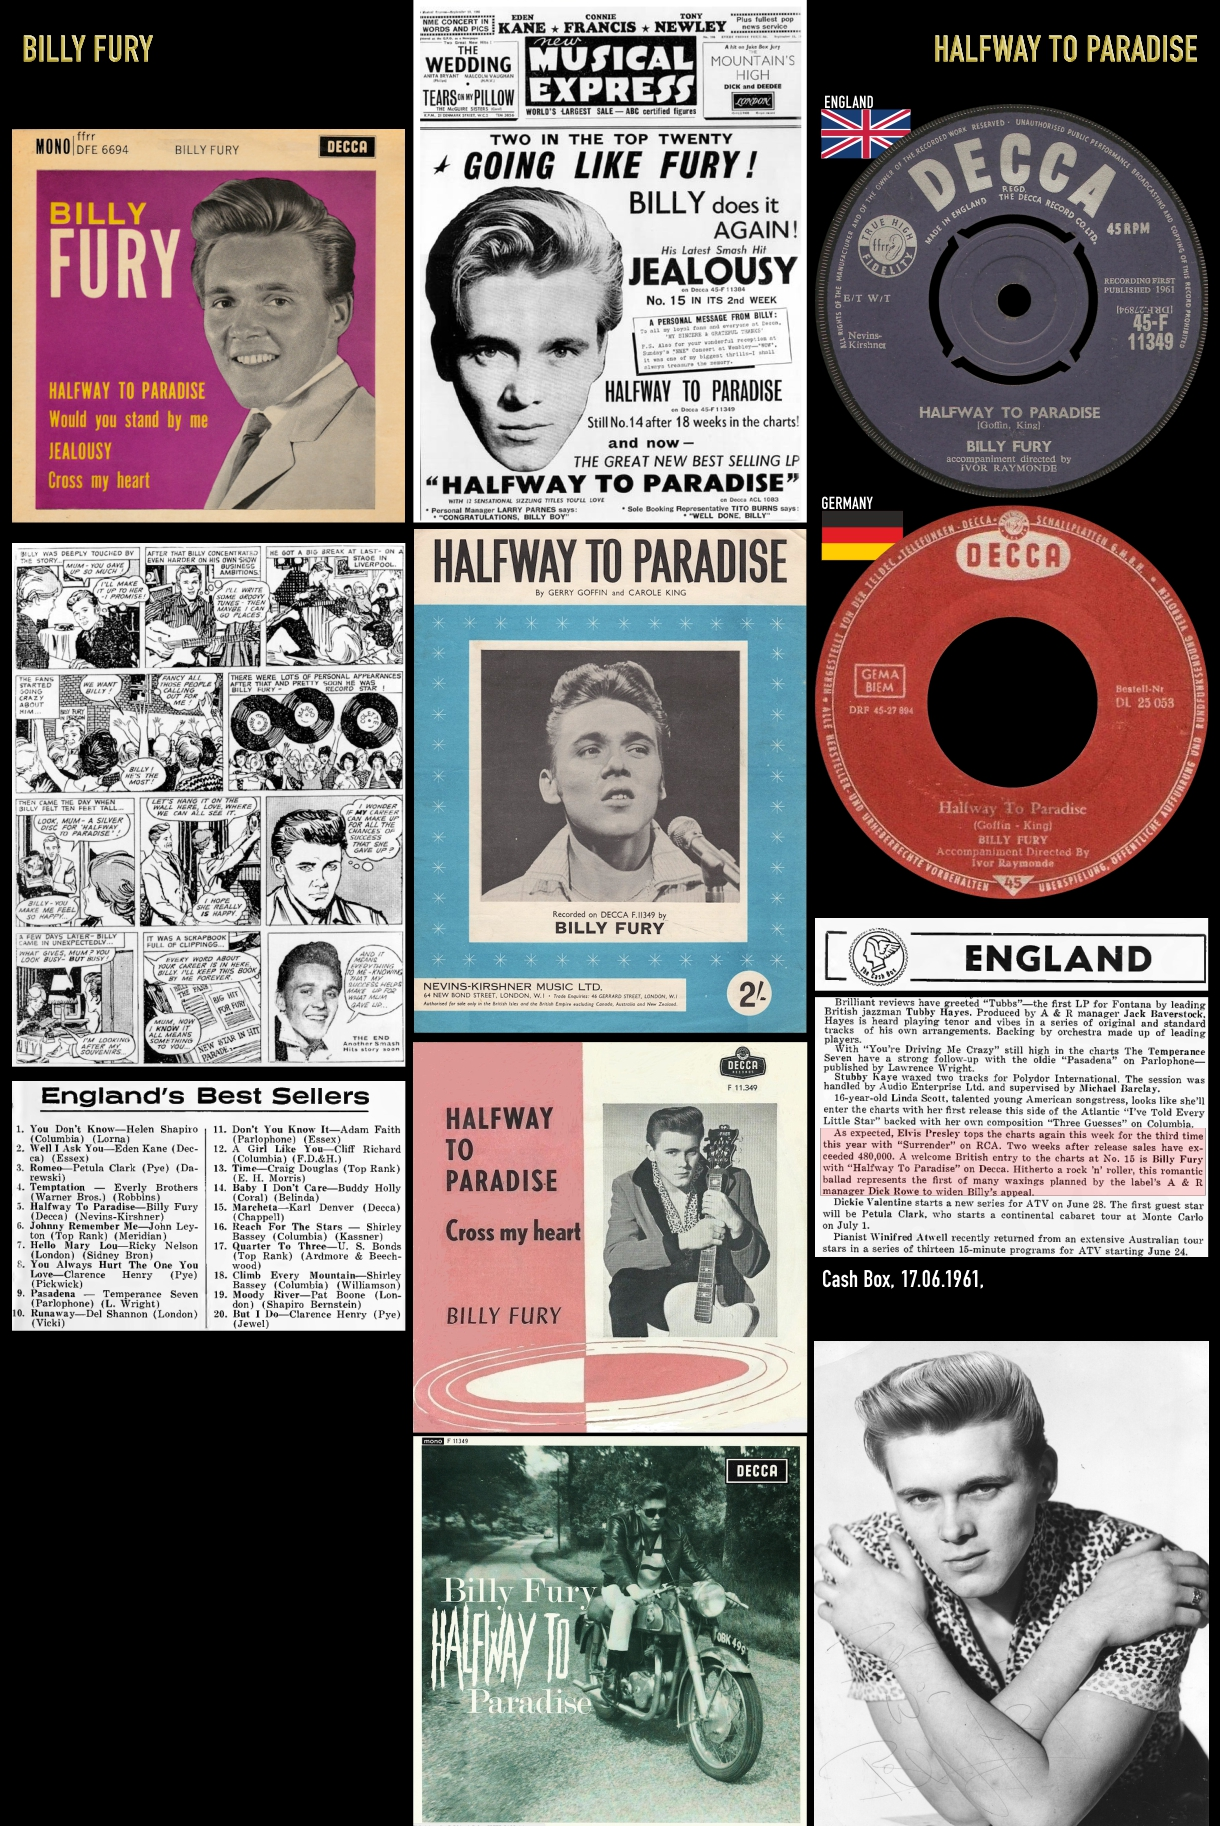 610513_Billy Fury_Halfway To Paradise